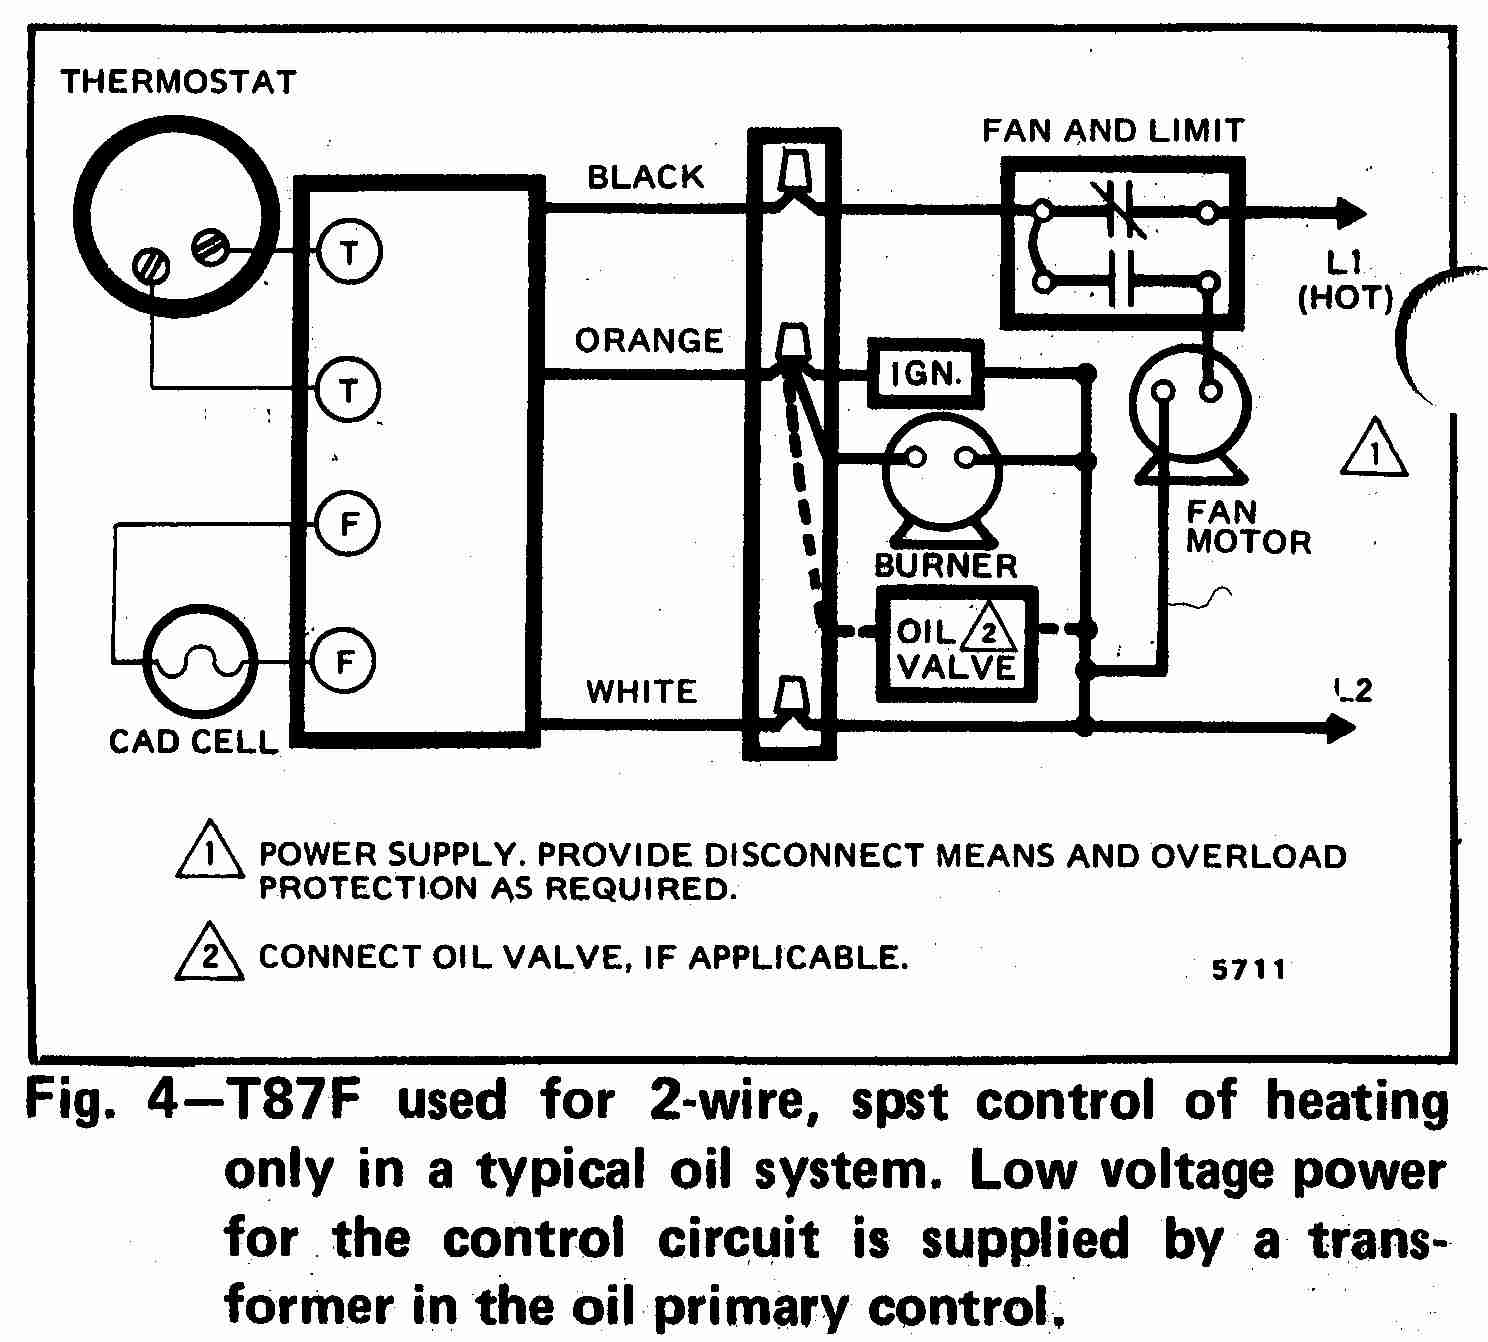 Home hvac wiring diagram hvac control board wiring diagram wiring room thermostat wiring diagrams for hvac systems hvac heat pump wiring diagram honeywell t87f thermostat wiring swarovskicordoba